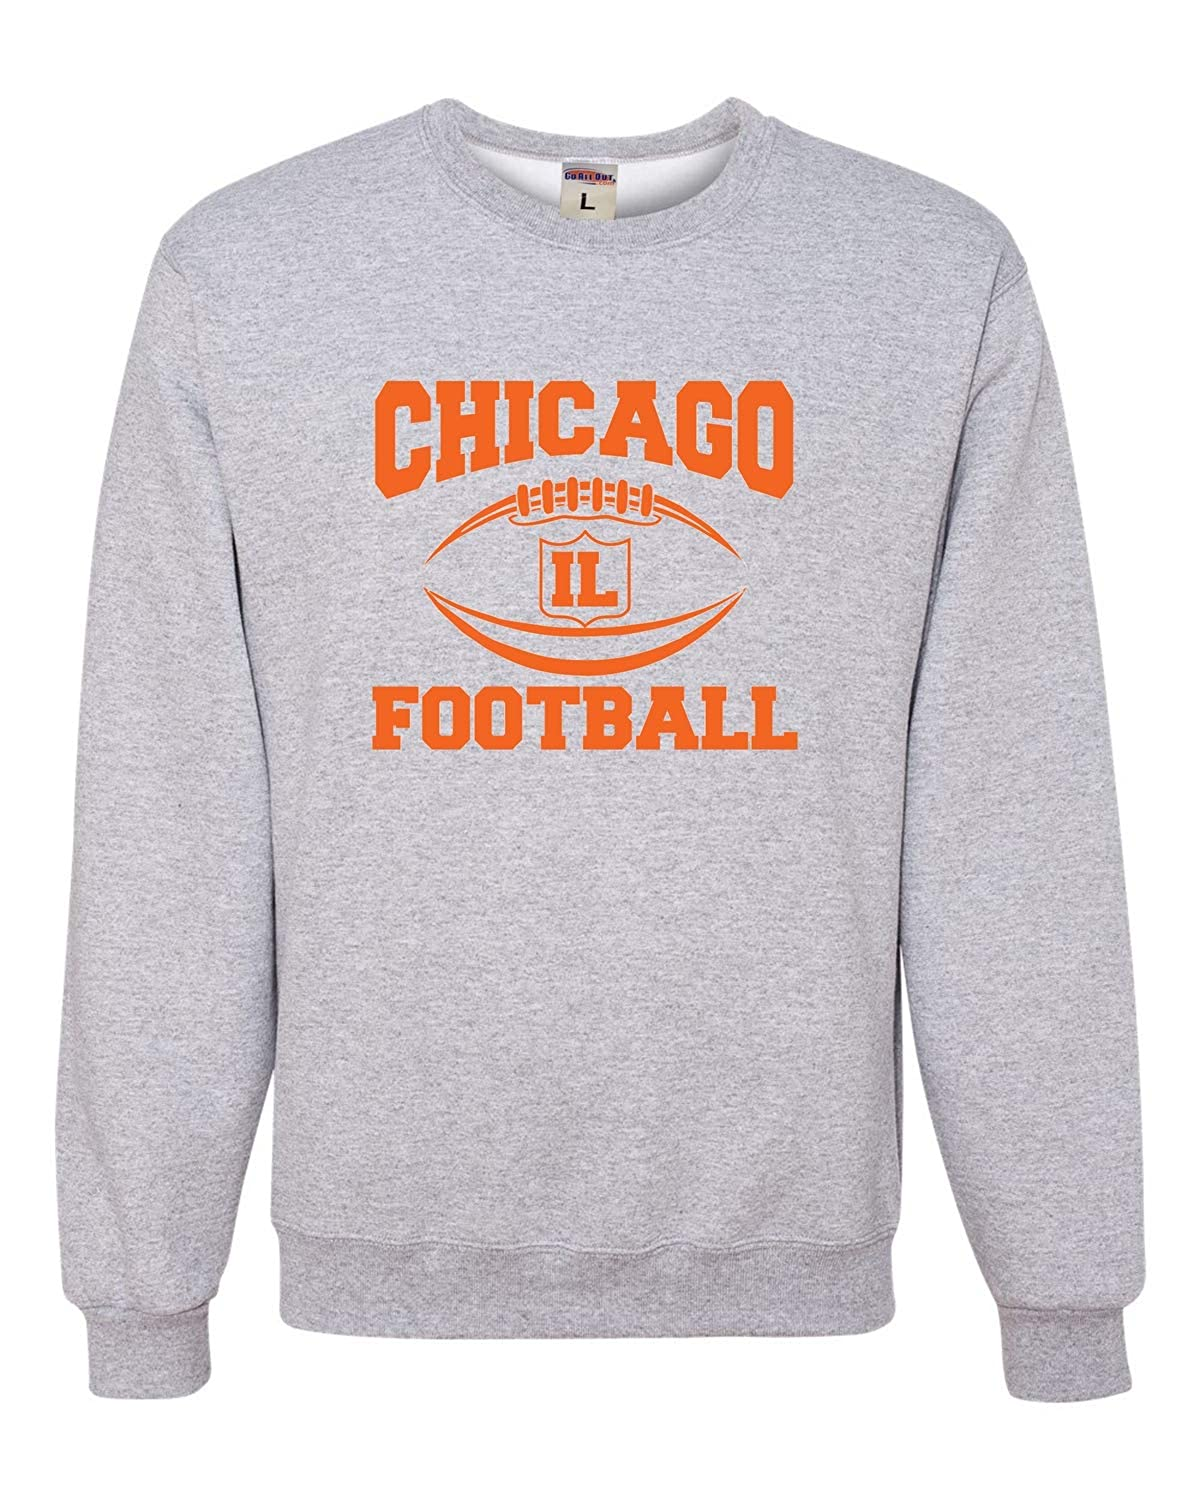 Go All Out Adult City of Chicago Illinois Football Sweatshirt Crewneck